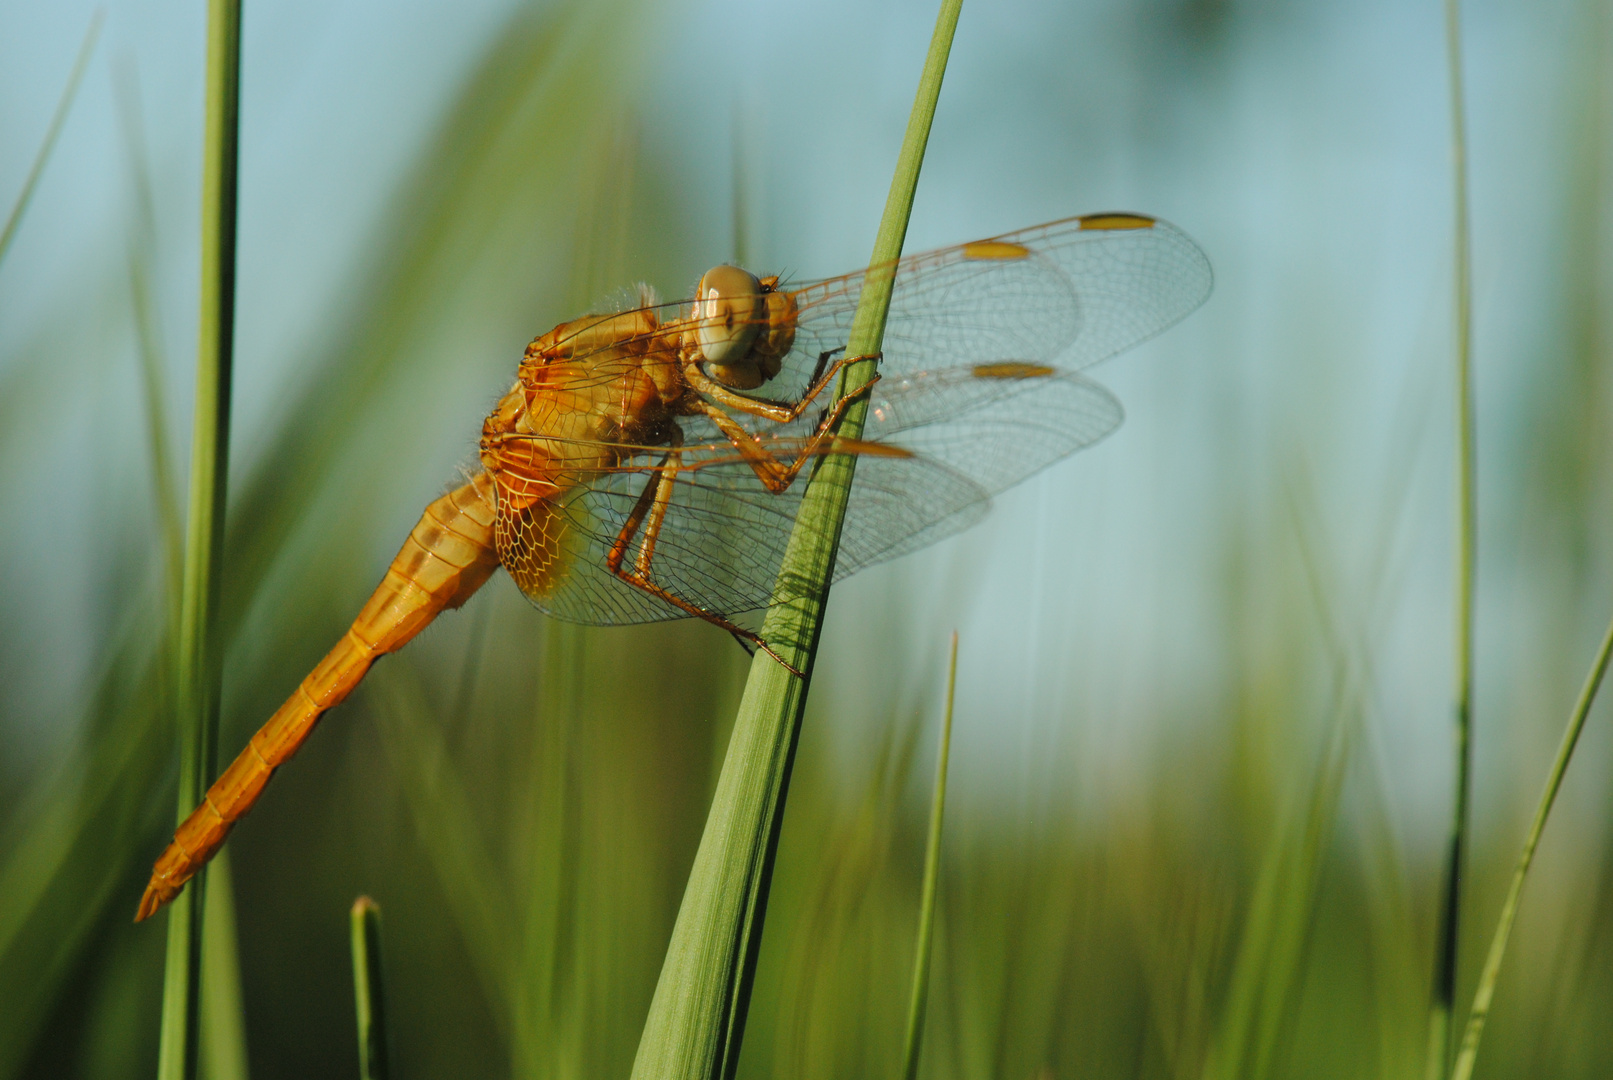 ~ A Flamy Ride In The Forest Of Grass ~ (Crocothemis erythraea, m)